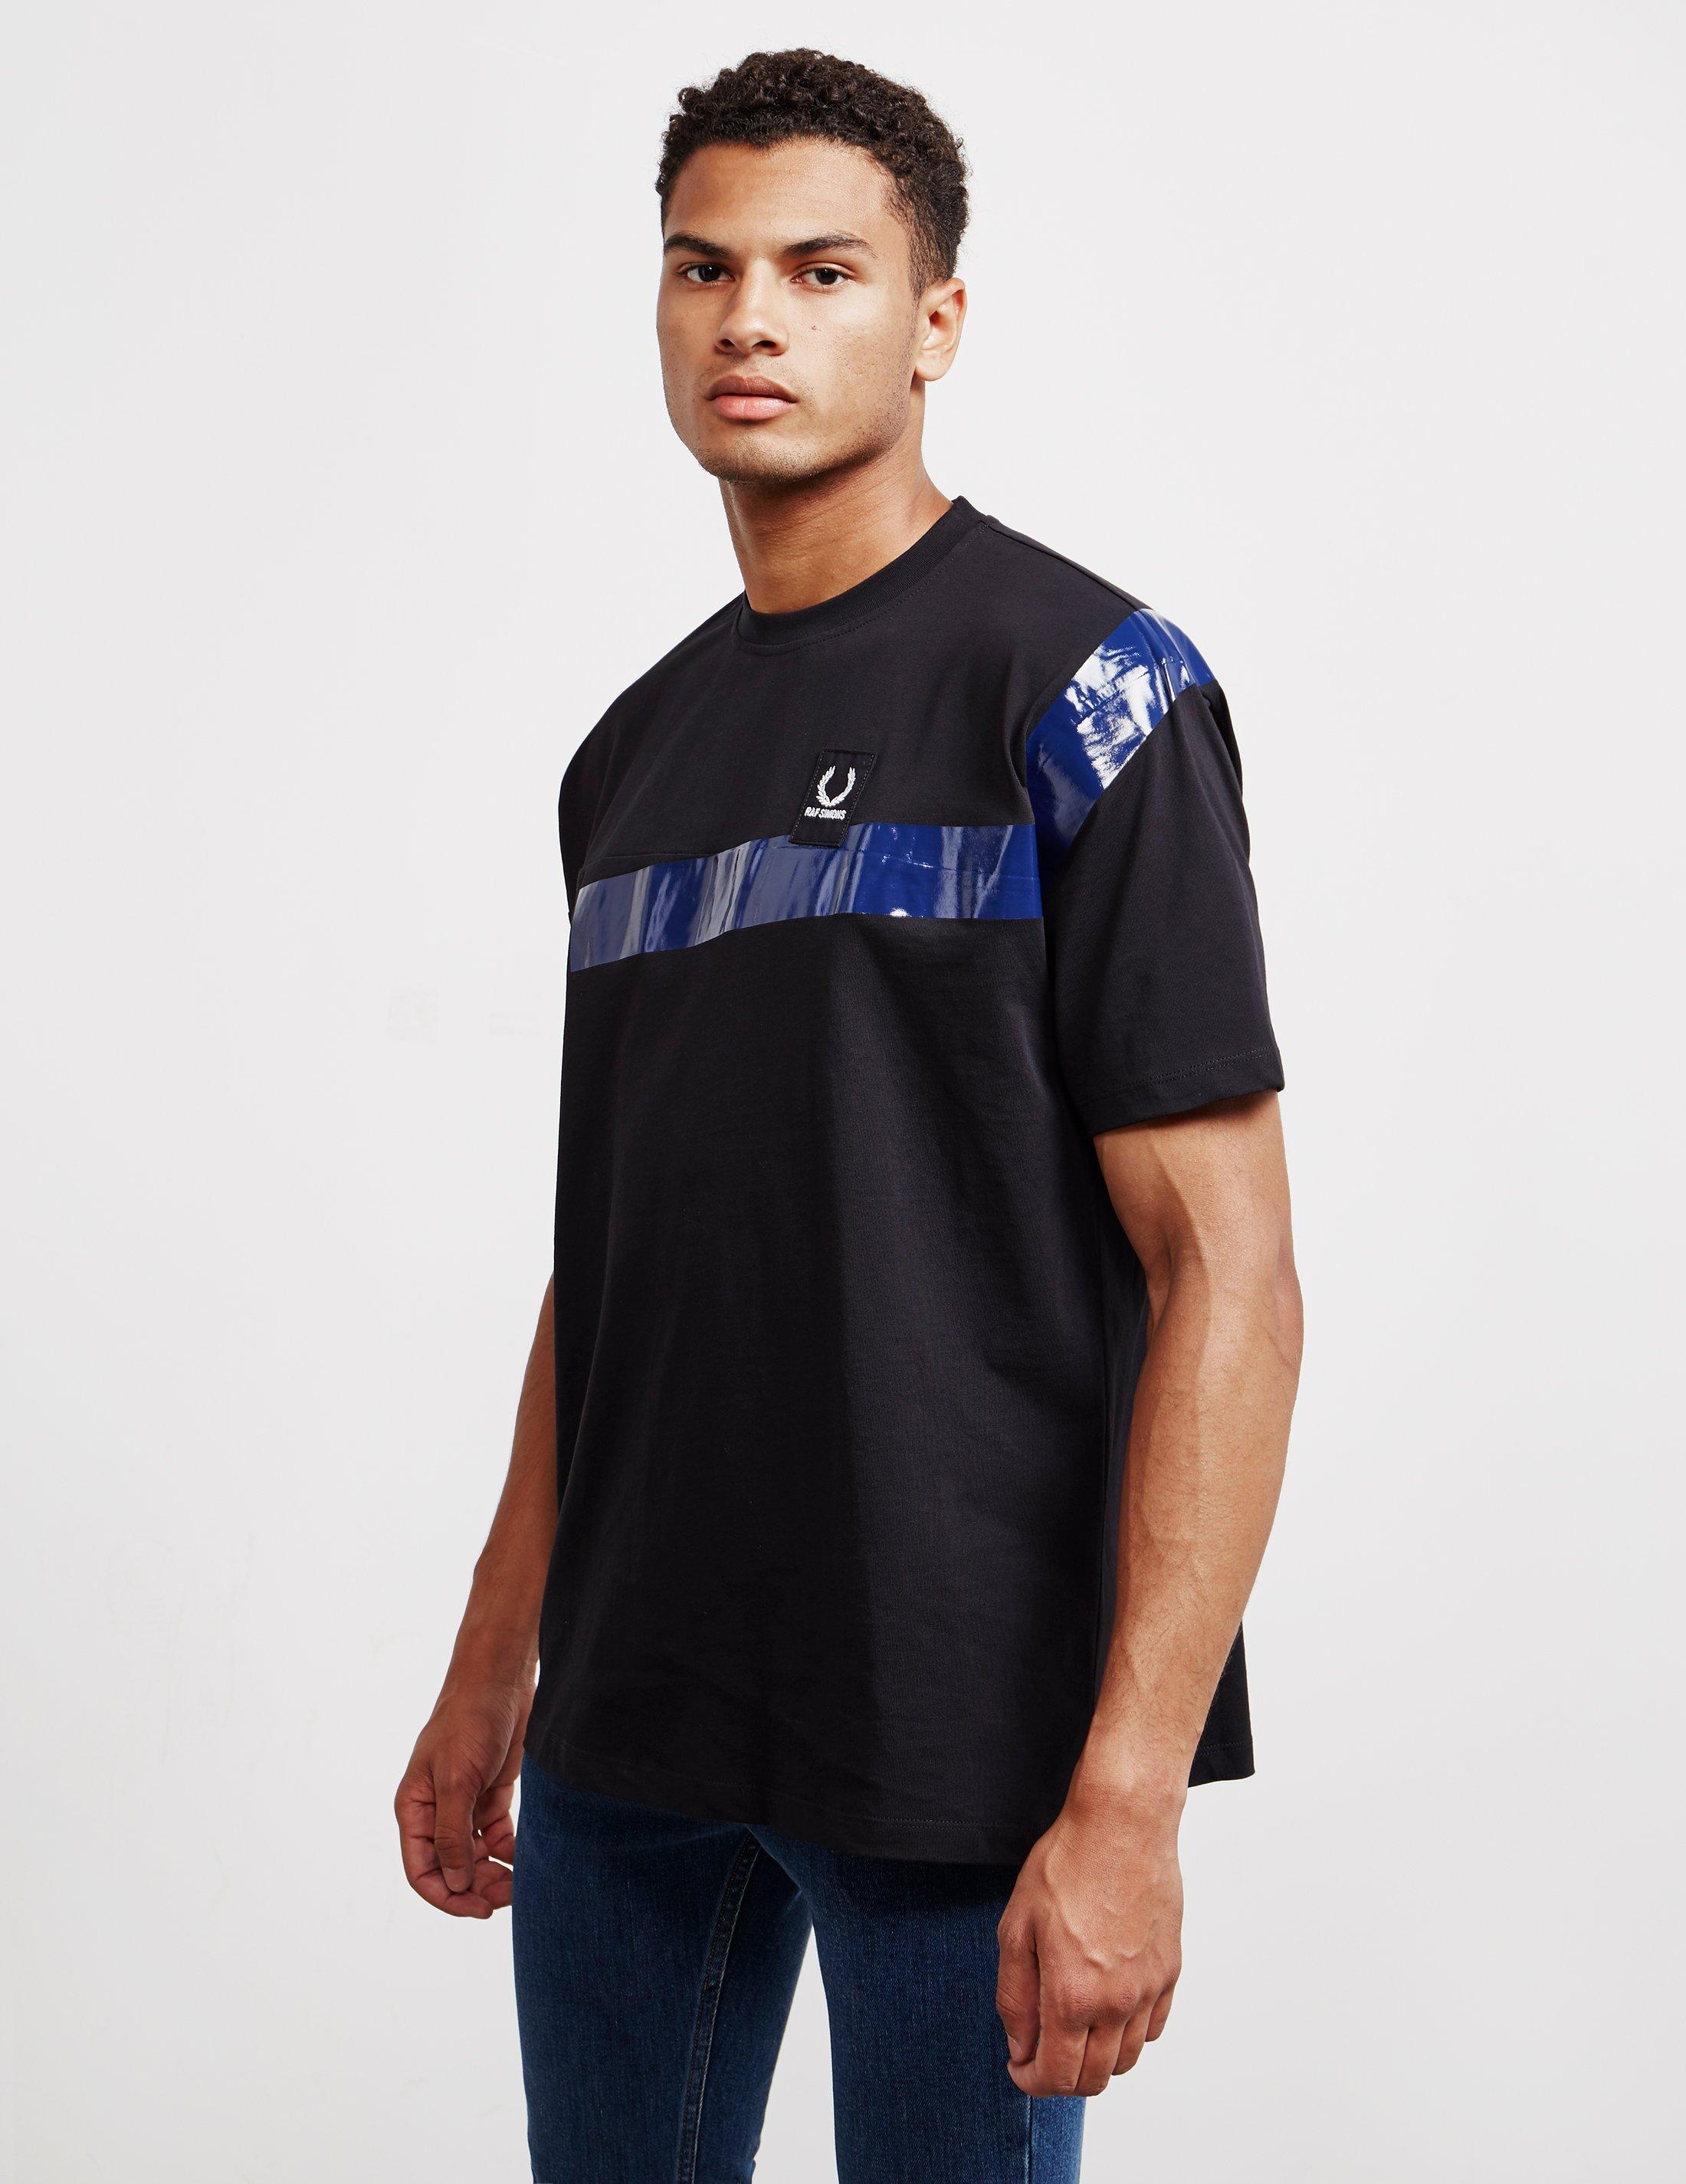 9844ecbf Lyst - Fred Perry X Raf Simons Short Sleeve Tape T-shirt Black in ...